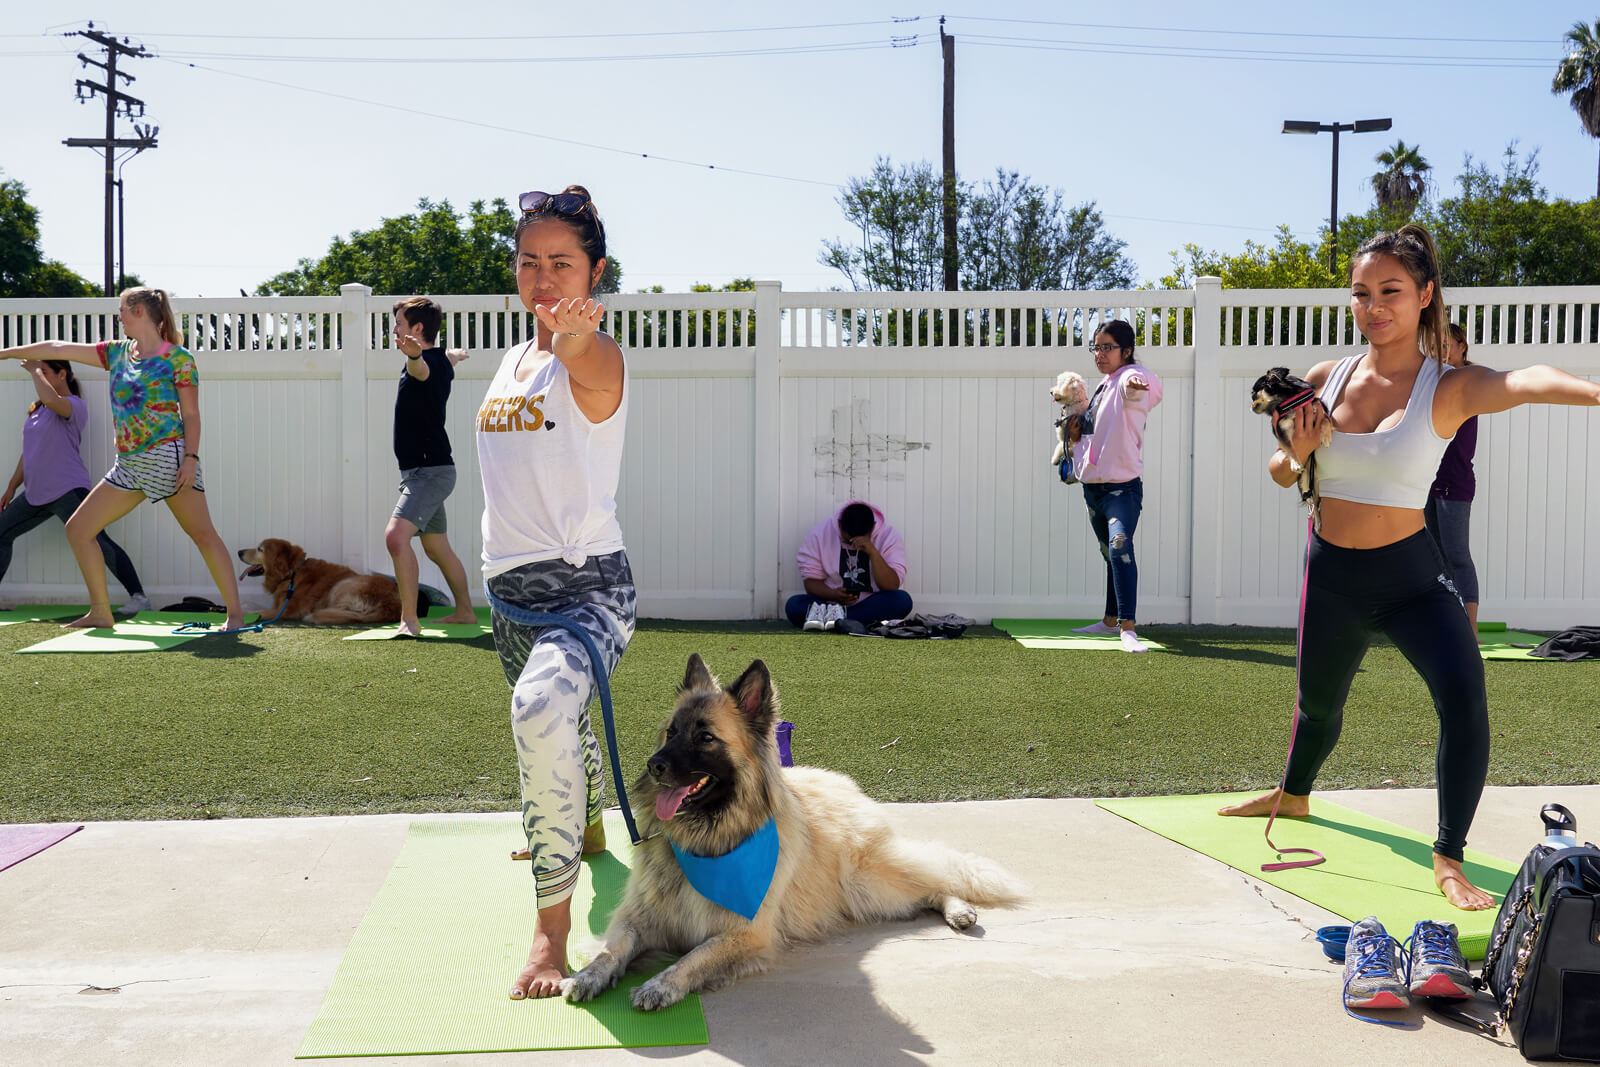 Dogs with people doing Yoga